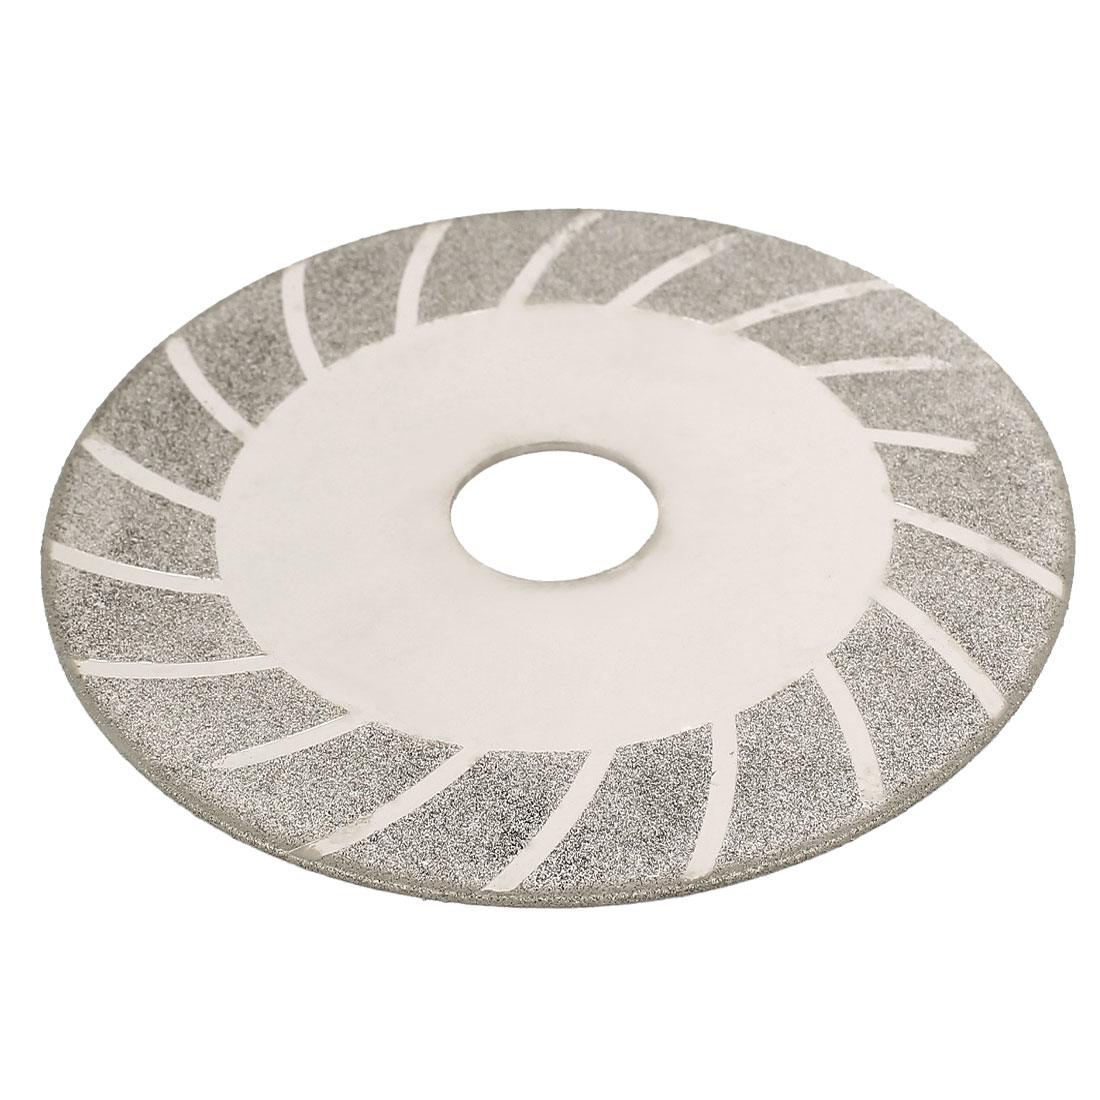 Ceramic Tile Glass Diamond Coated Cut Off Grinding Disc Wheel 100mmx20mmx1.3mm